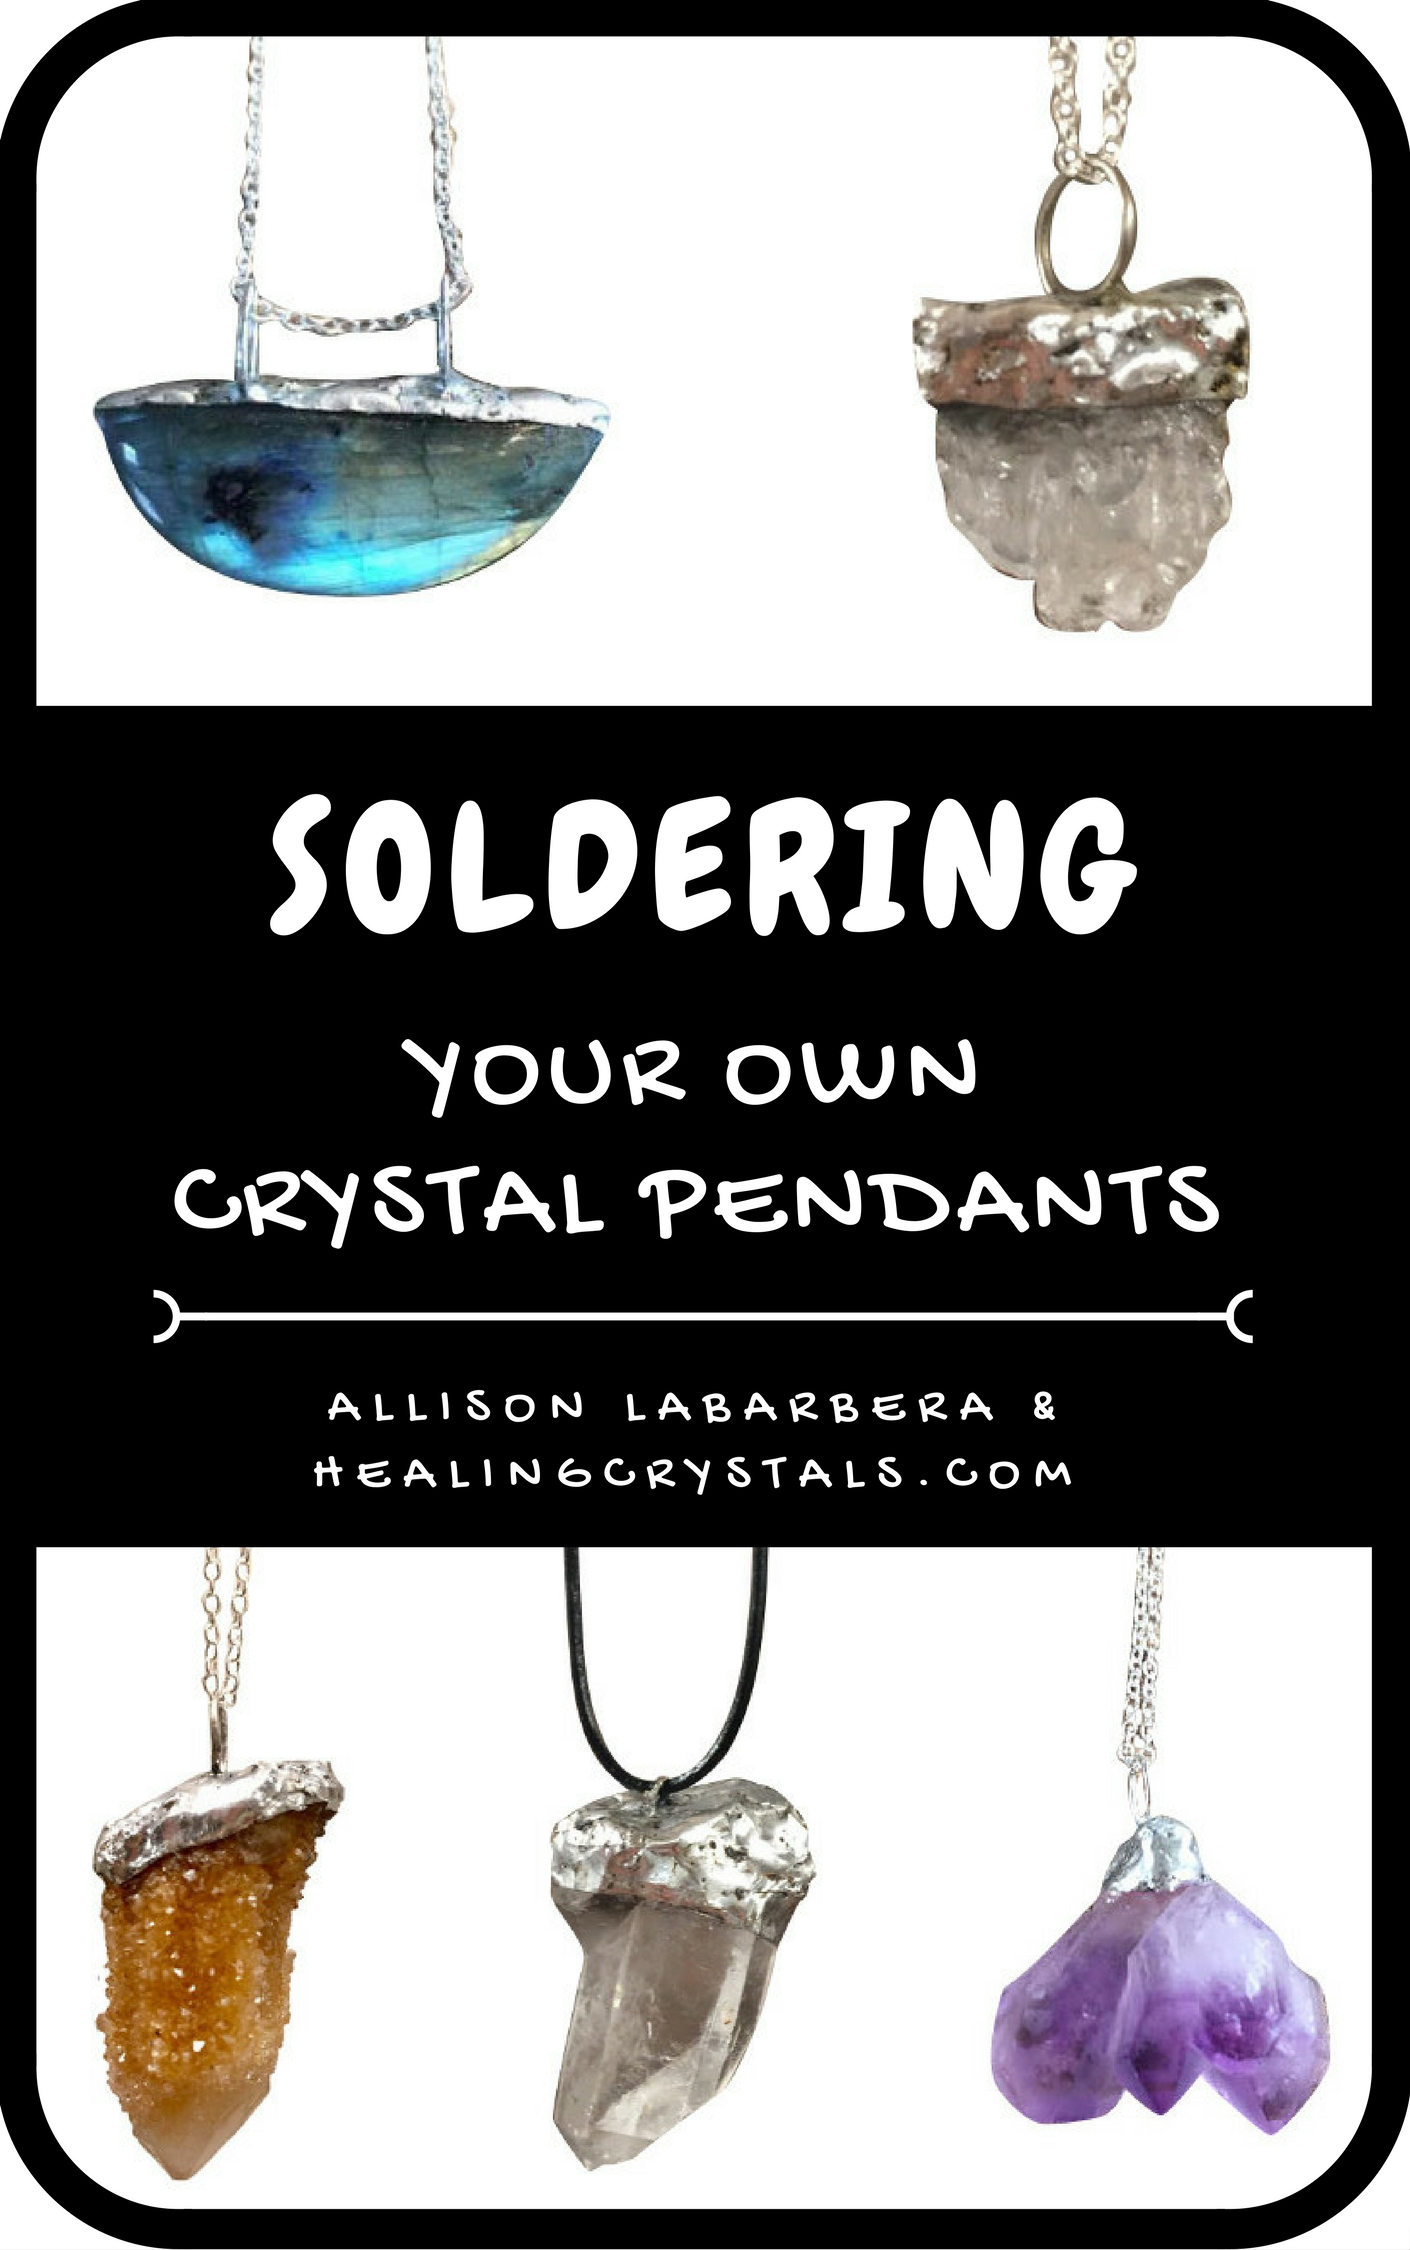 eBook - Soldering your own Crystal Pendants